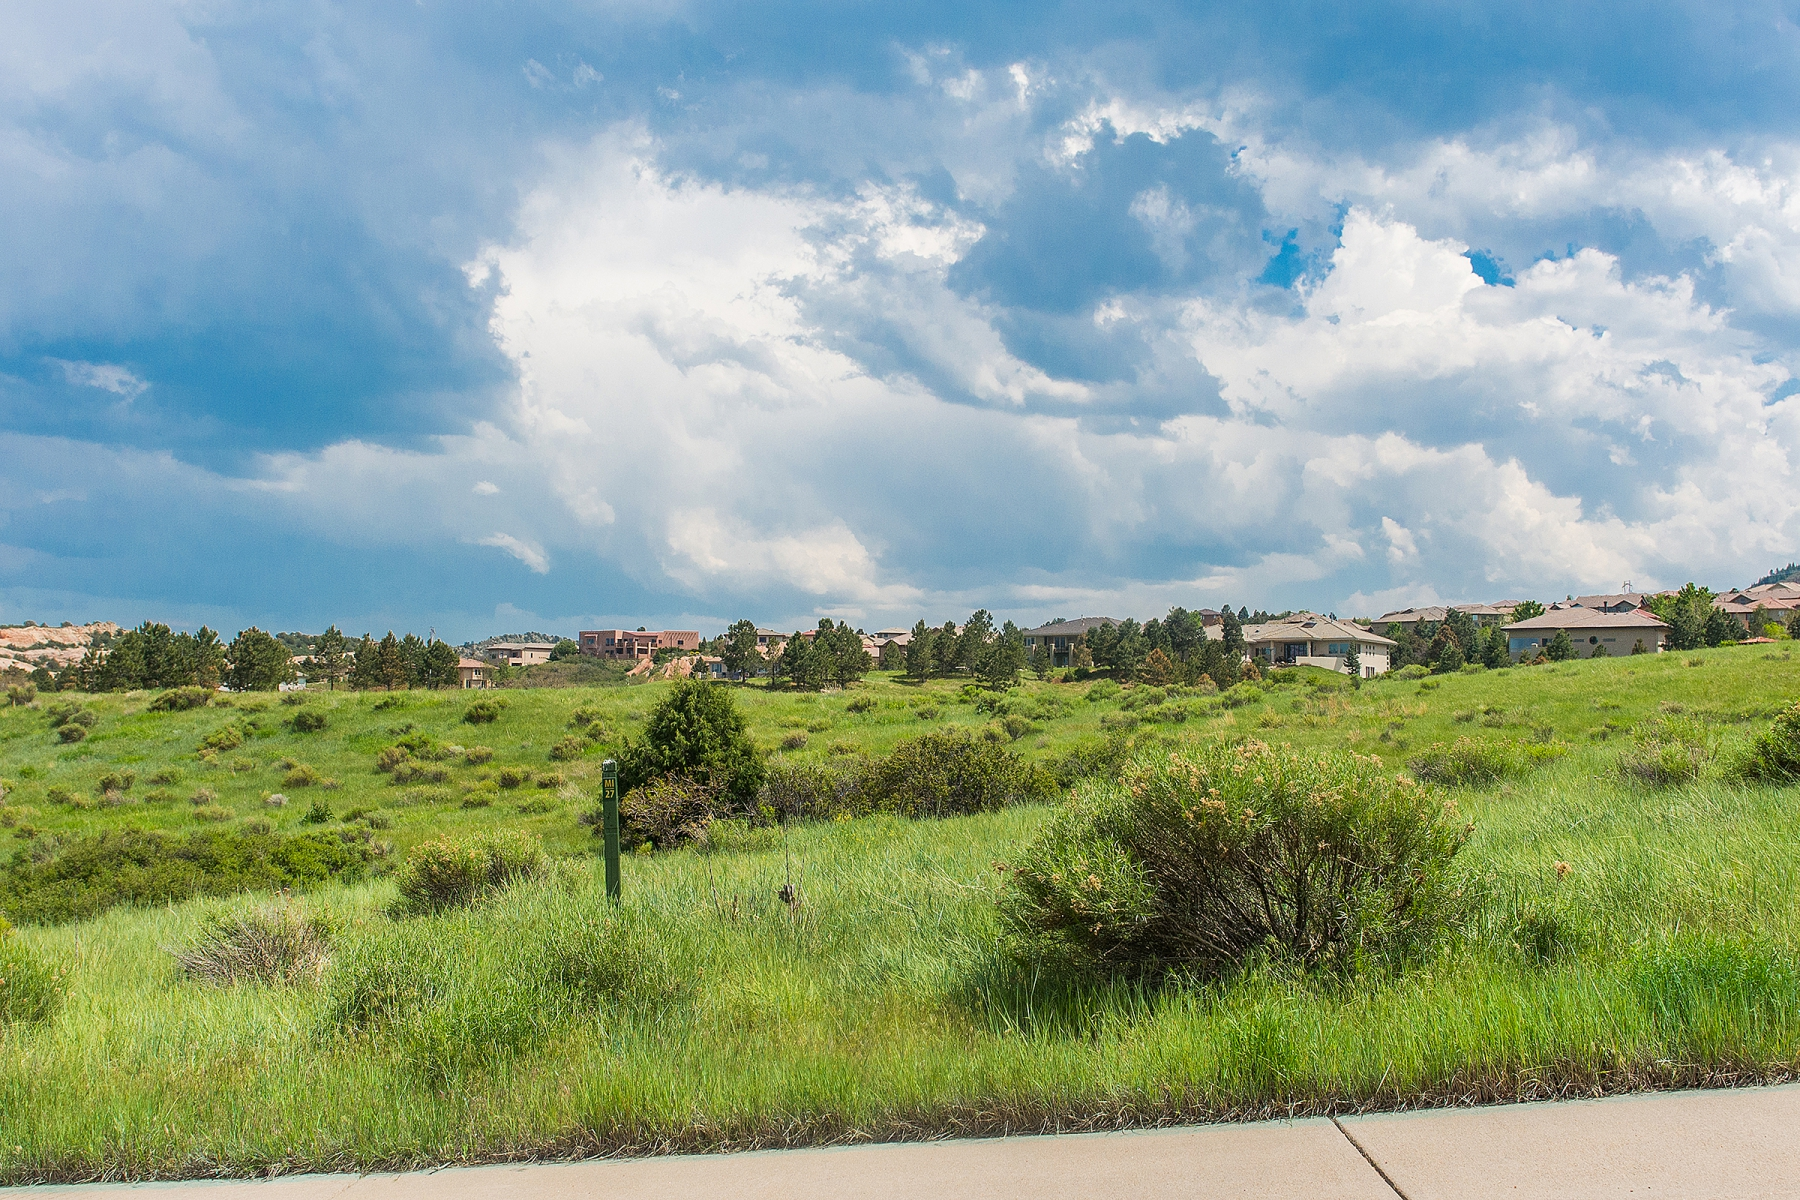 Ravenna, a private gated lifestyle community offering great amenities 7843 Dante Dr Littleton, Colorado 80125 United States